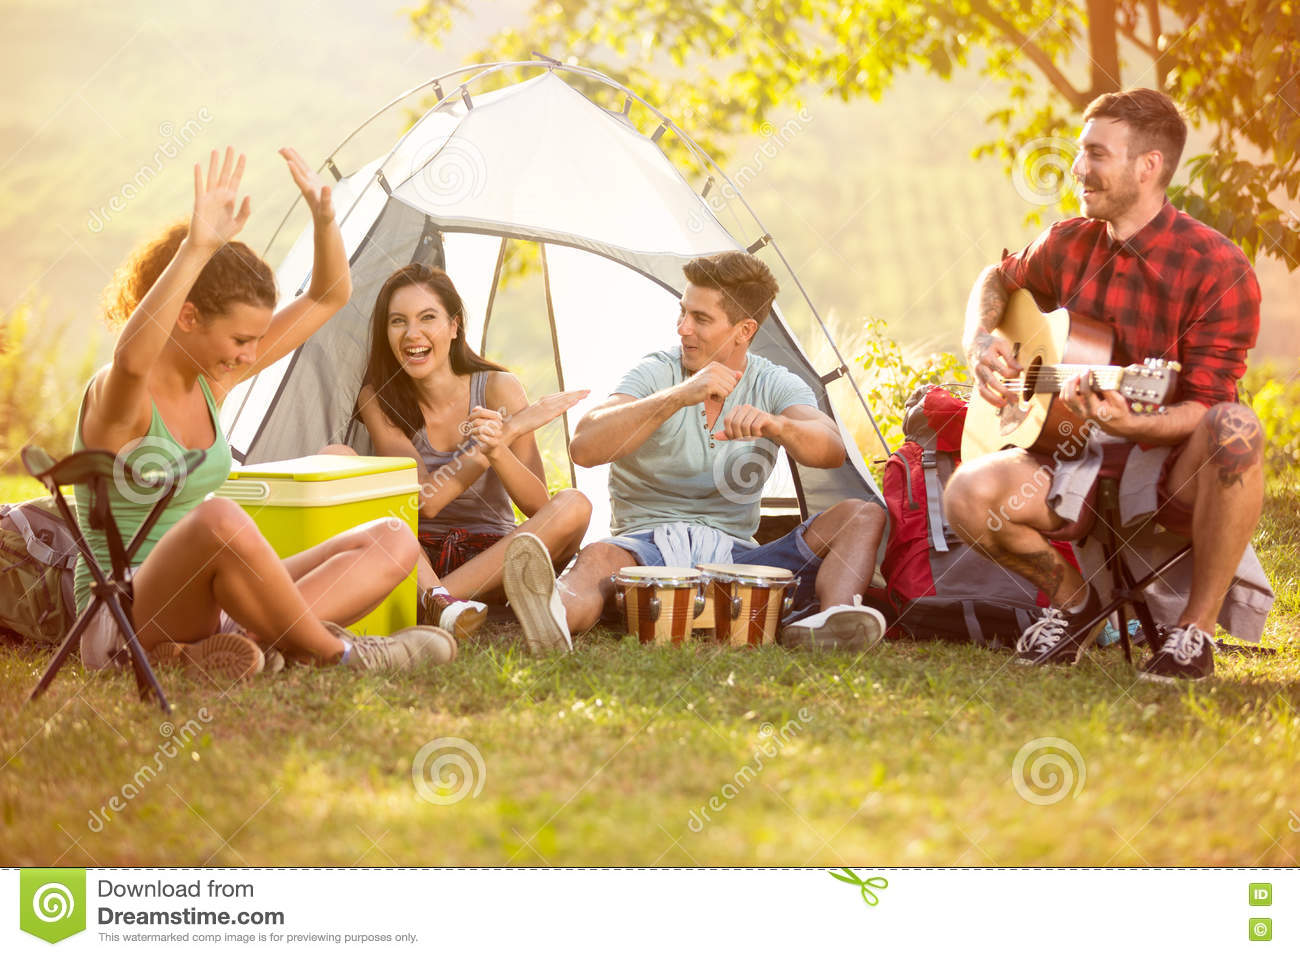 Young people enjoy in music of drums and guitar on camping trip